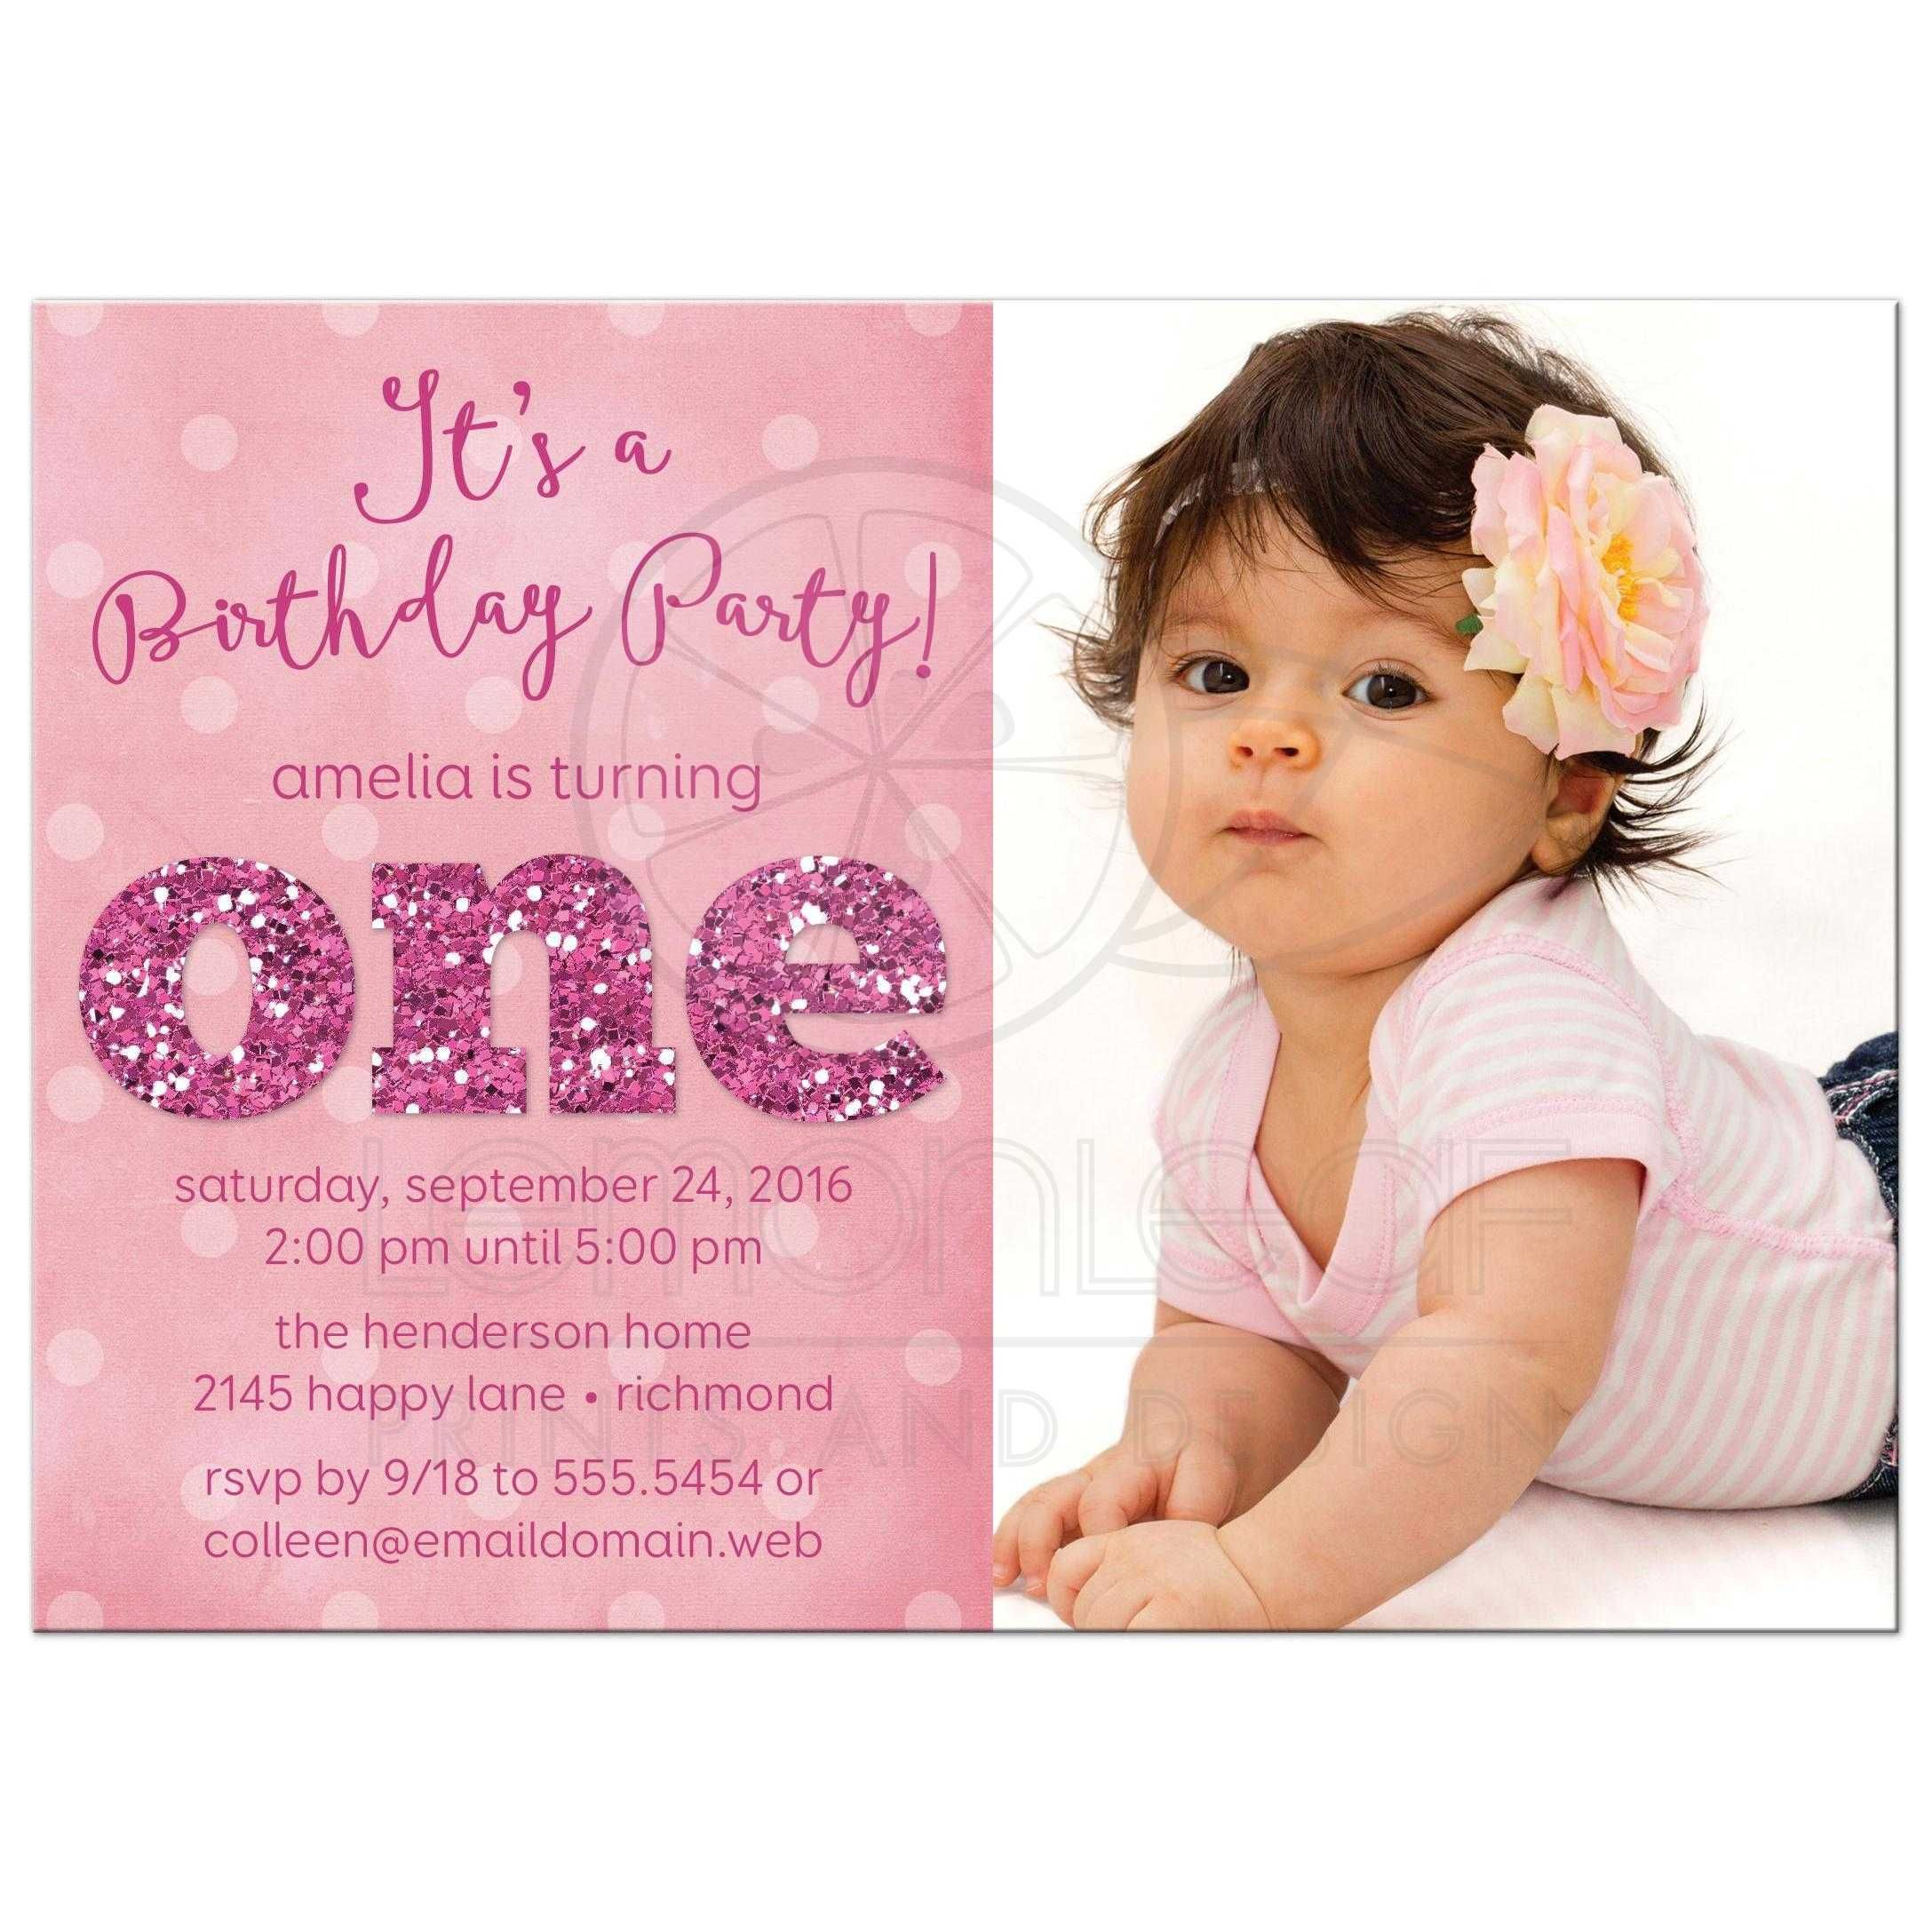 Ist Birthday Party Photo Invitations Sparkle One Birthday Invitation Card Template 1st Birthday Party Invitations 1st Birthday Invitations